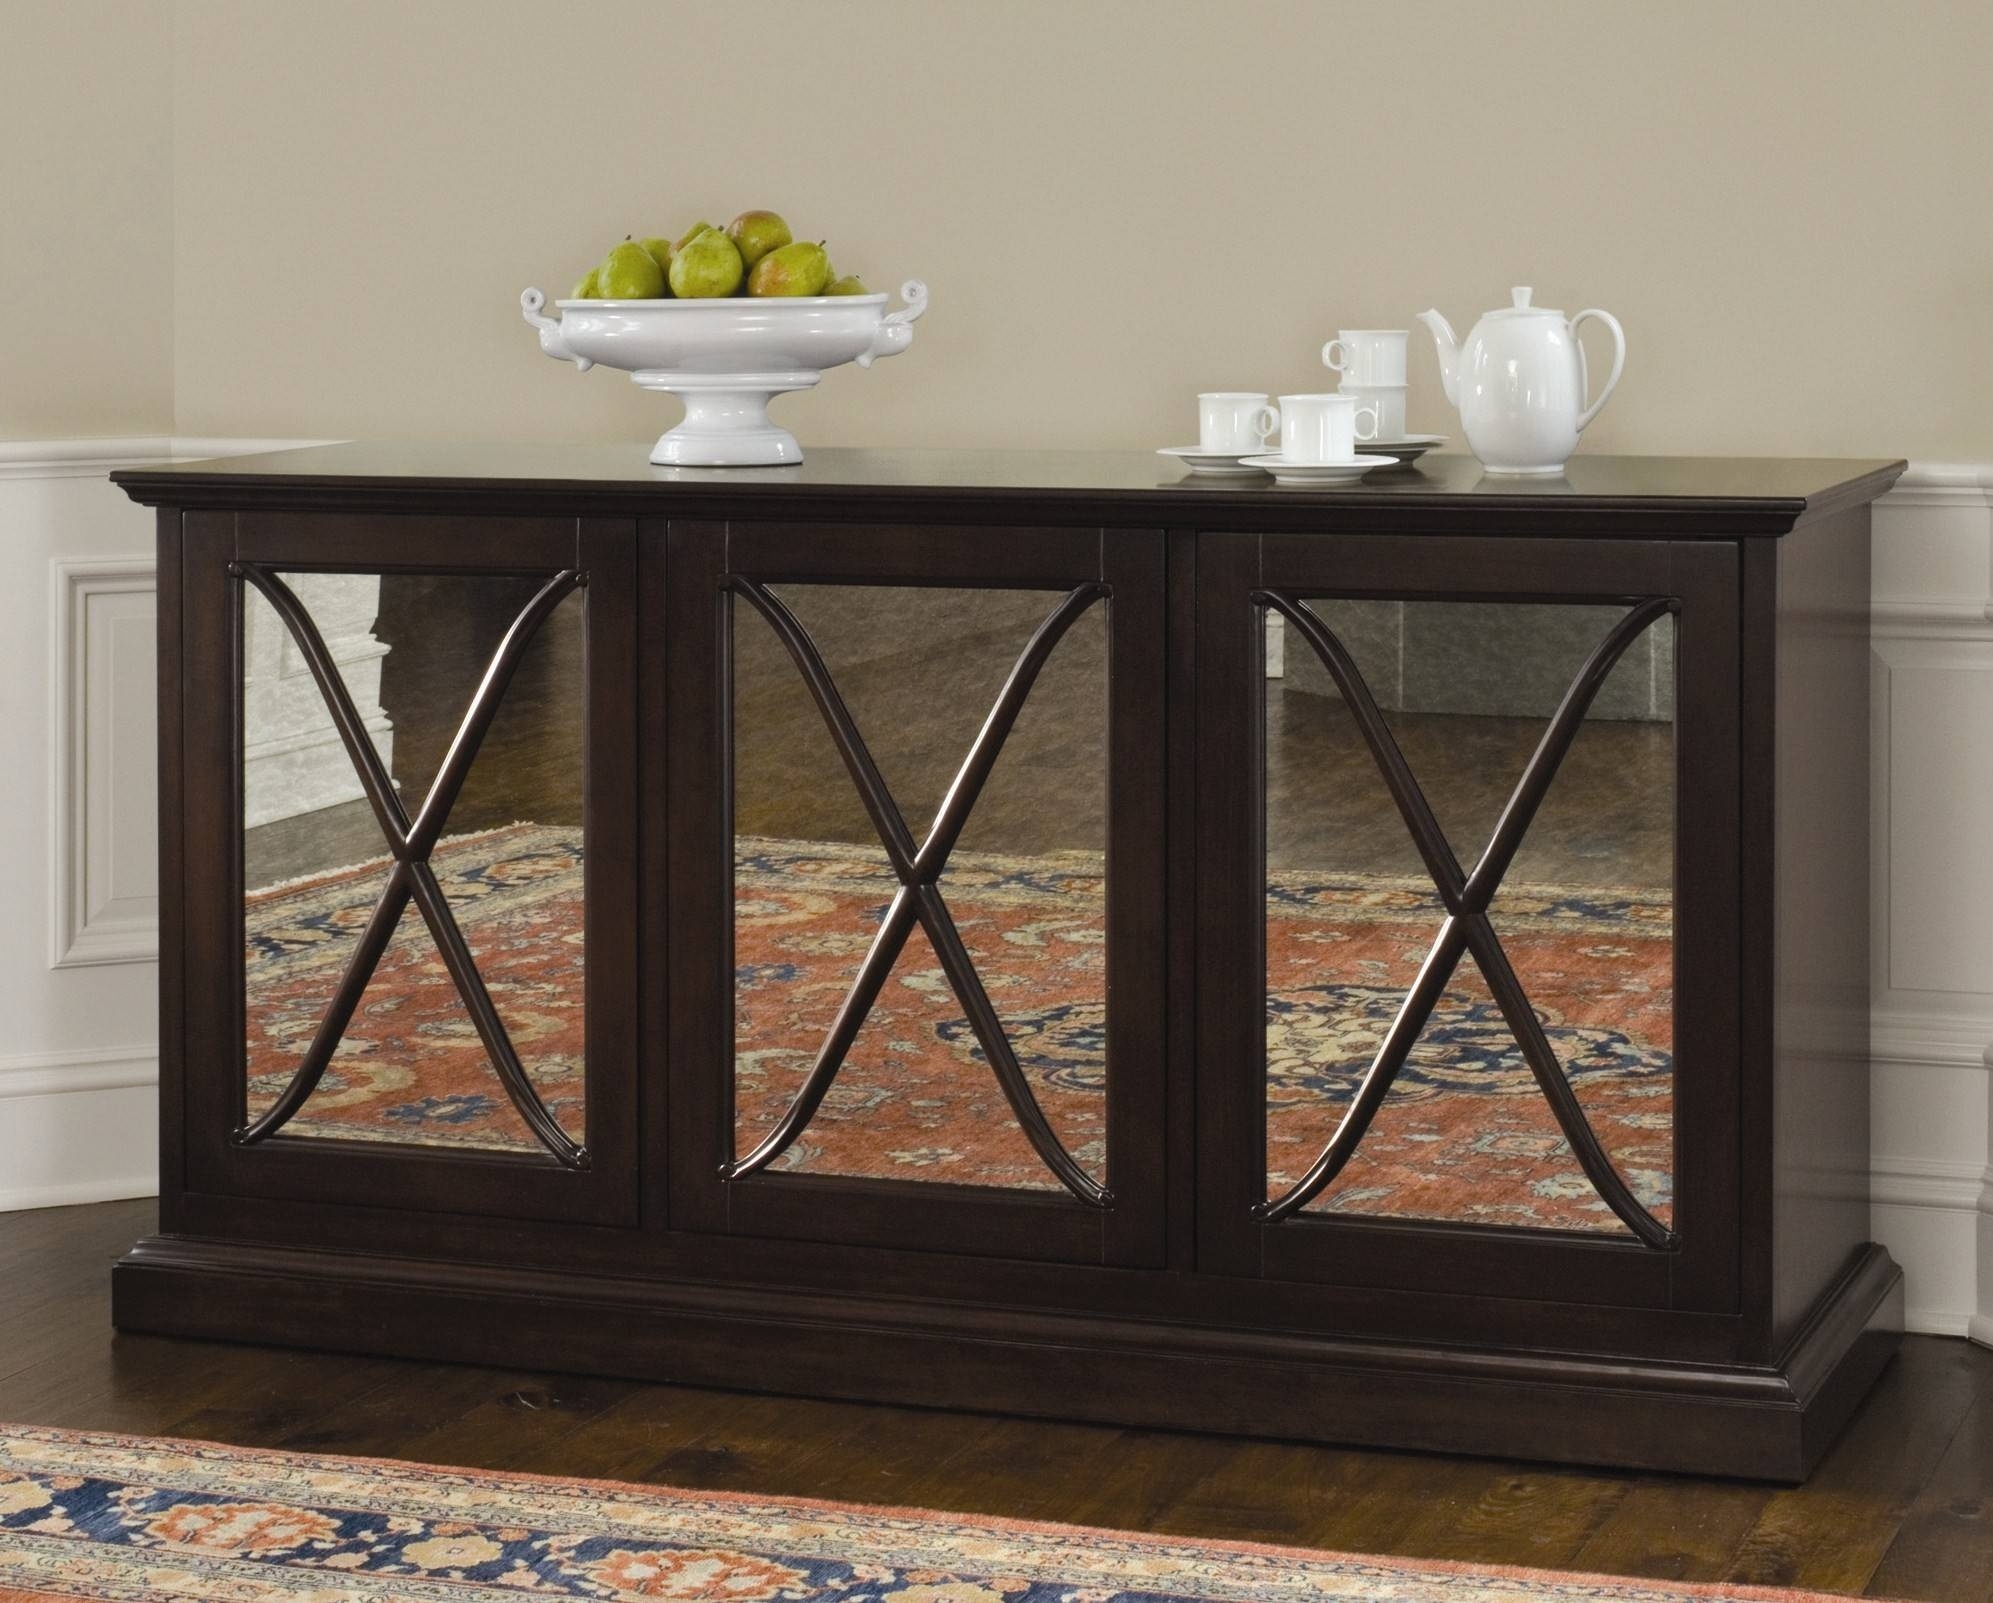 Sideboards. Astounding Mirrored Buffet Cabinet: Mirrored-Buffet with regard to Small Mirrored Sideboards (Image 19 of 30)